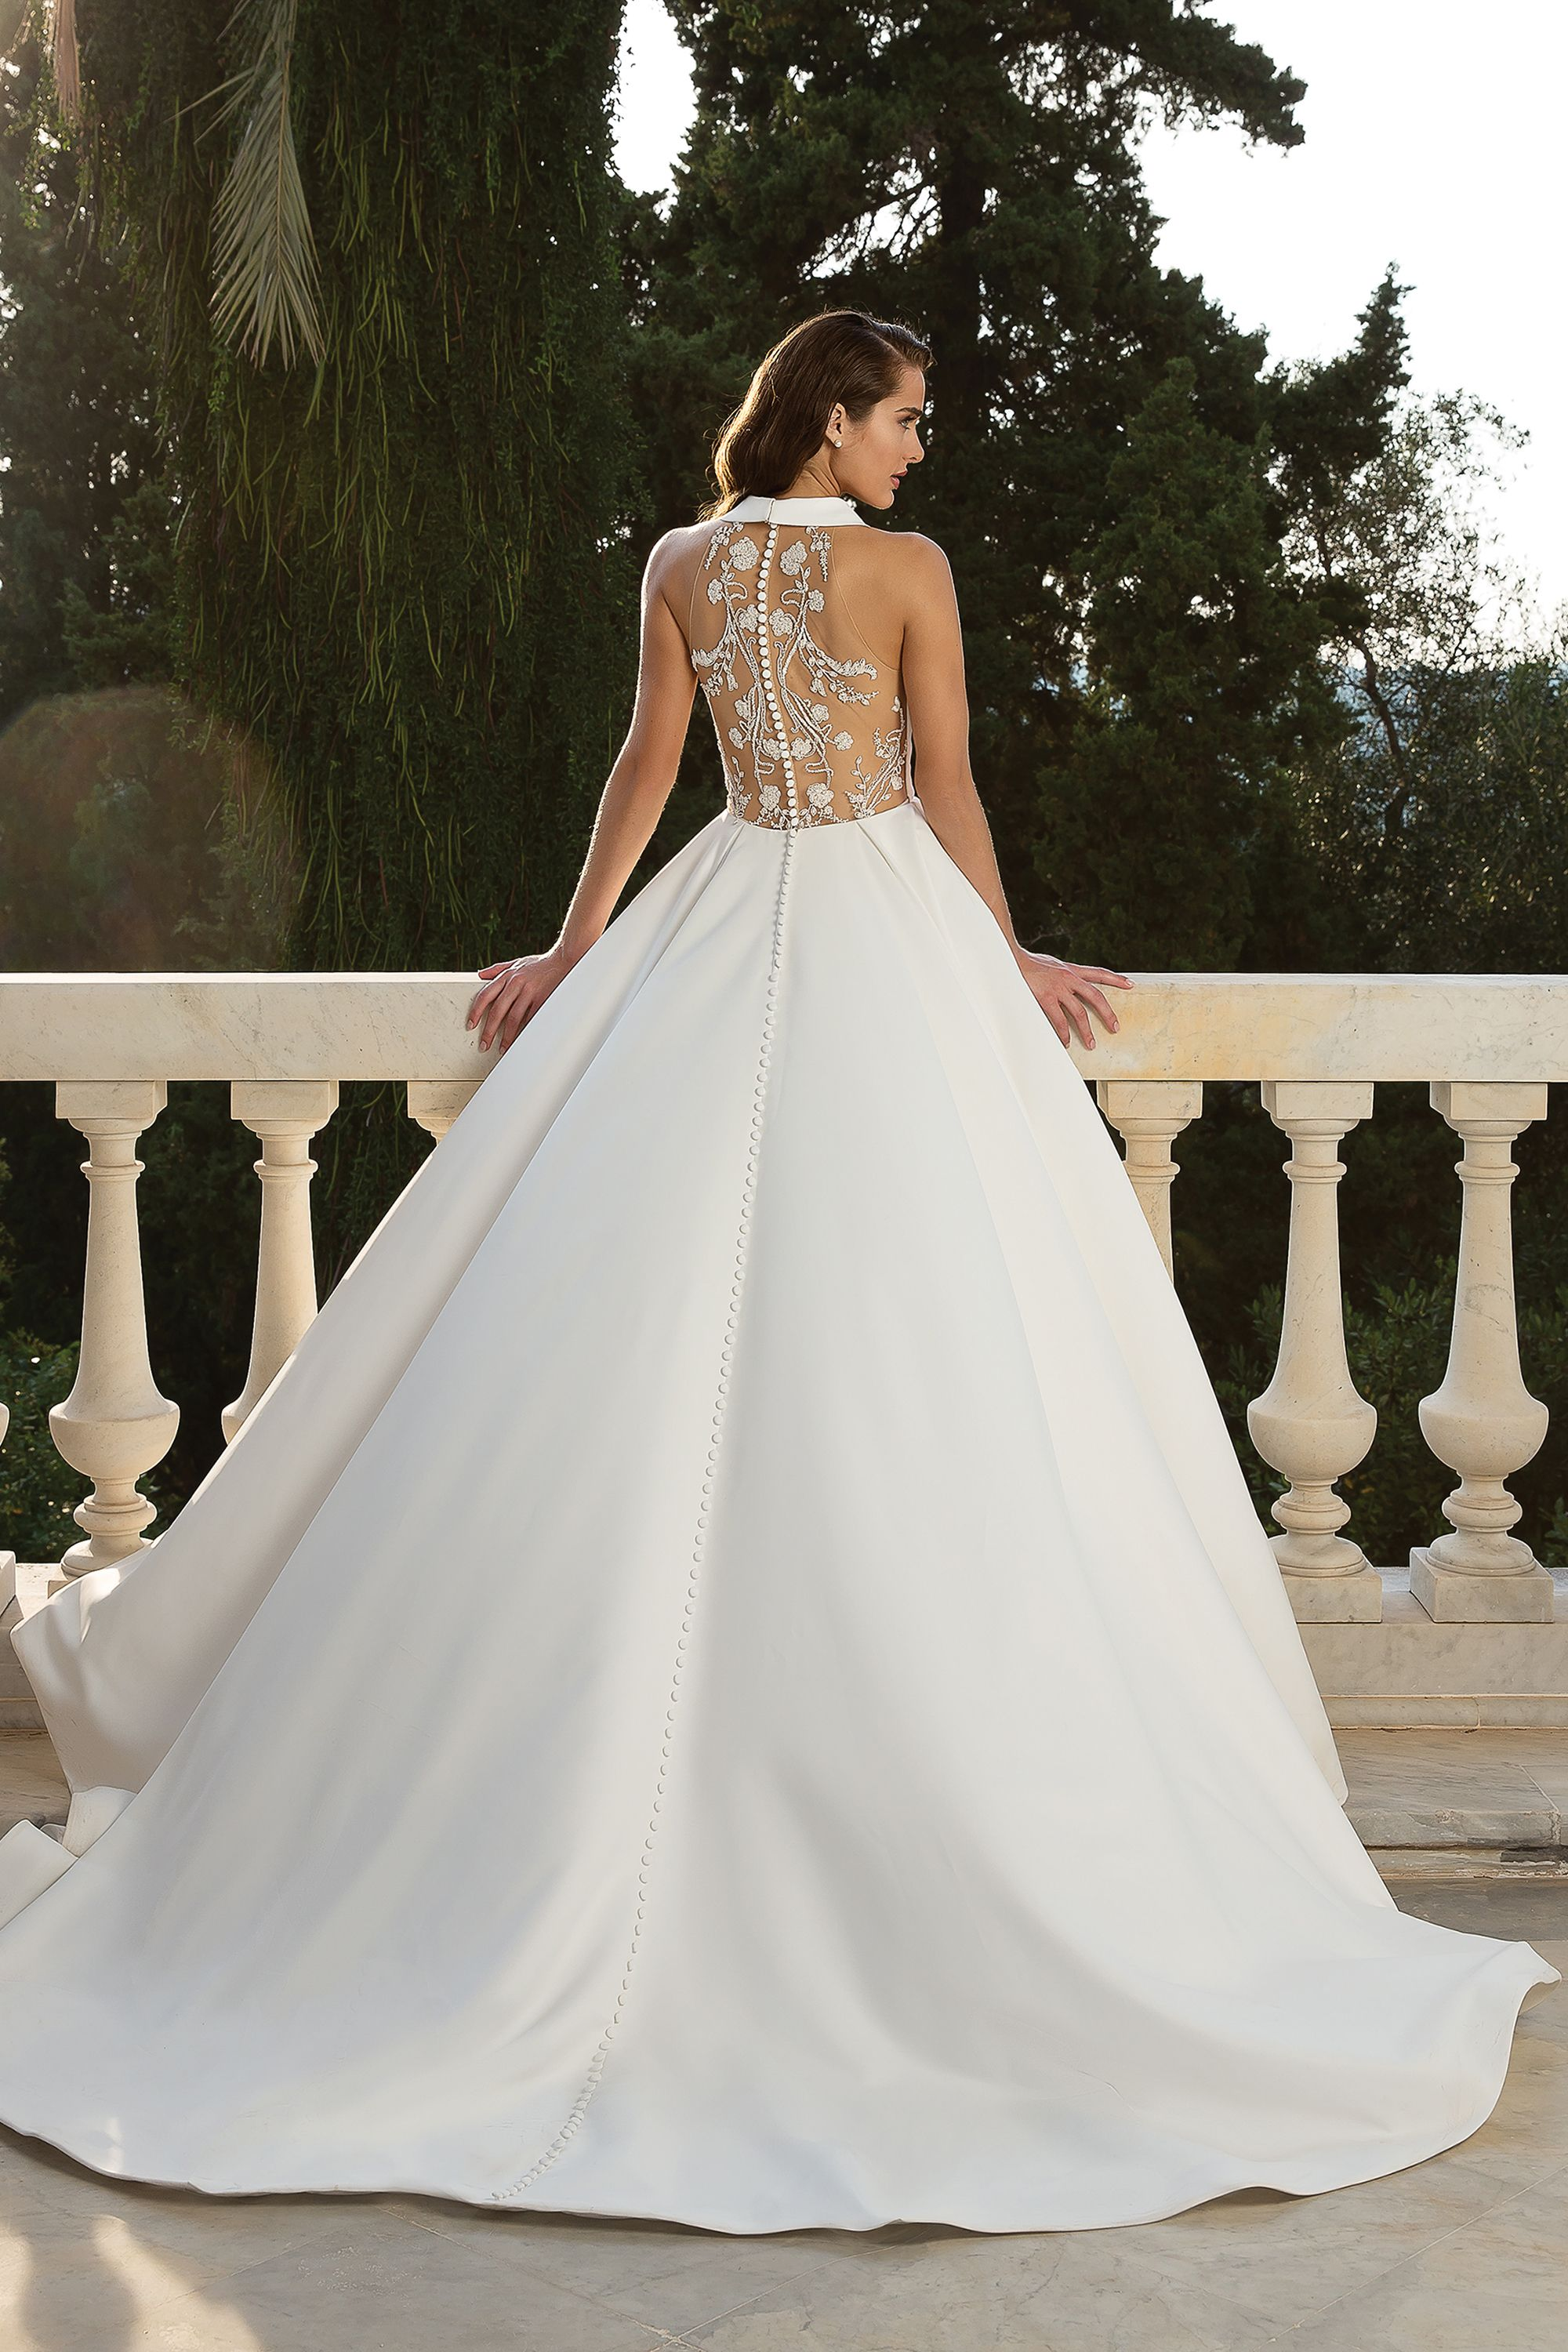 Style 88072 Halter Neckline Satin Ball Gown With Beaded Back Detail Justin Alexander Justin Alexander Wedding Dress Wedding Dresses Ball Gowns Wedding